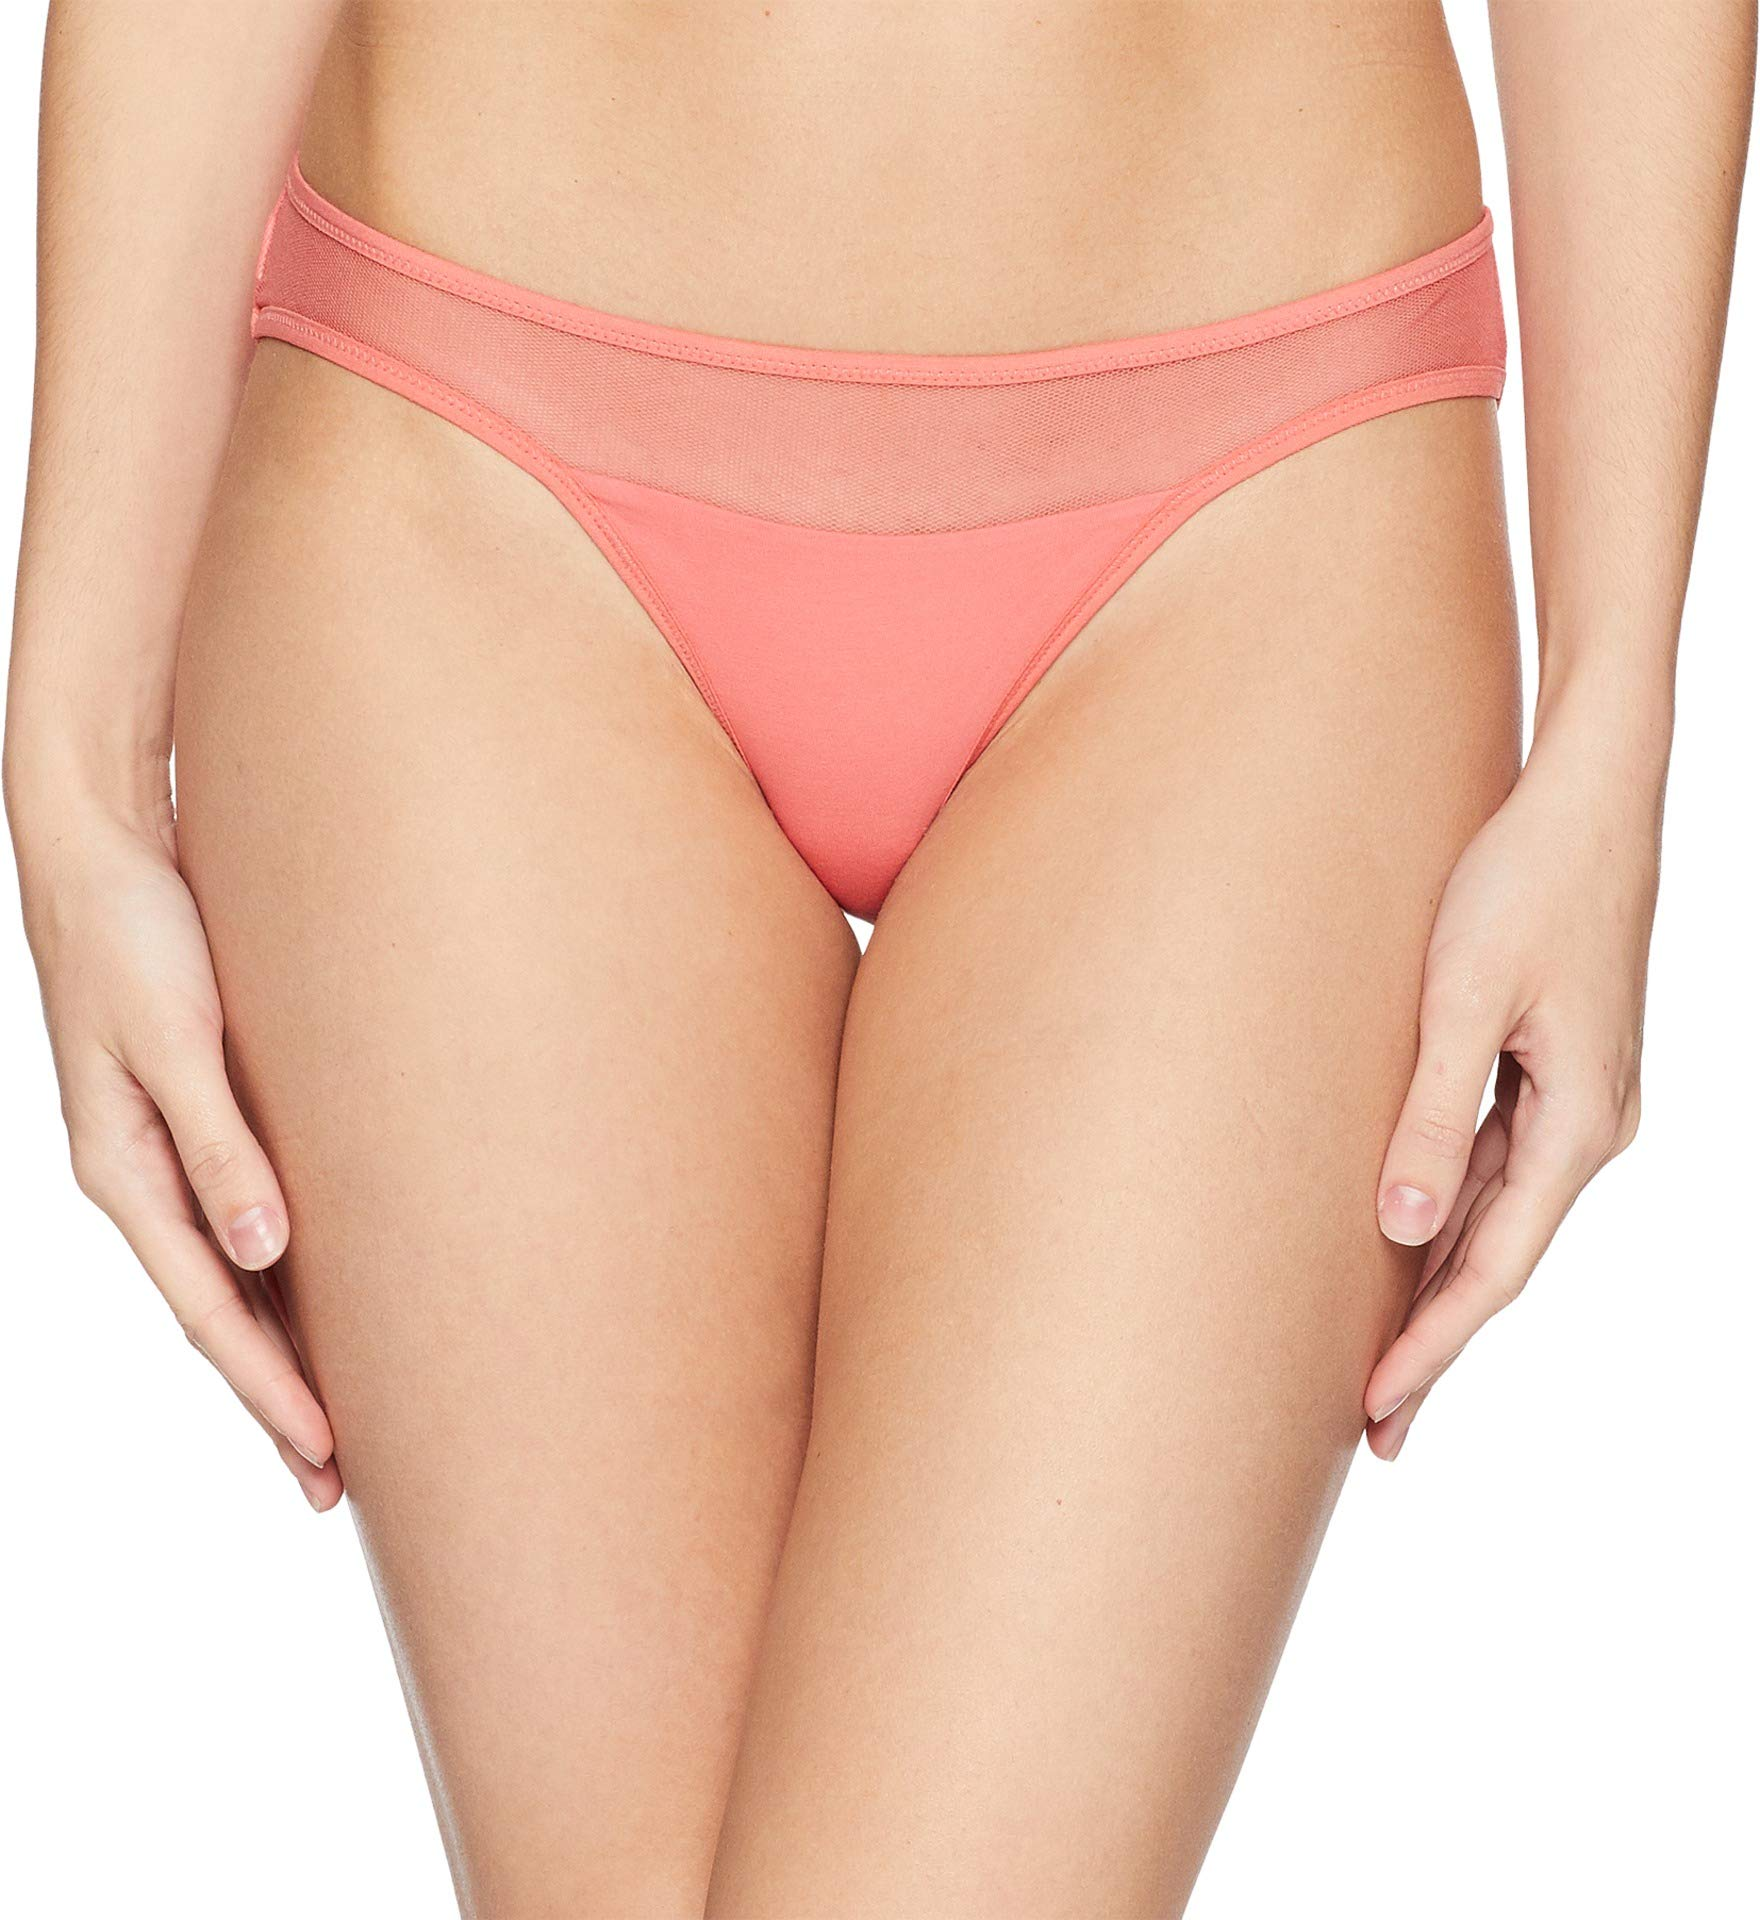 Skin Women's Onyx Tulle Bikini Spiced Coral Large by Skin Industries